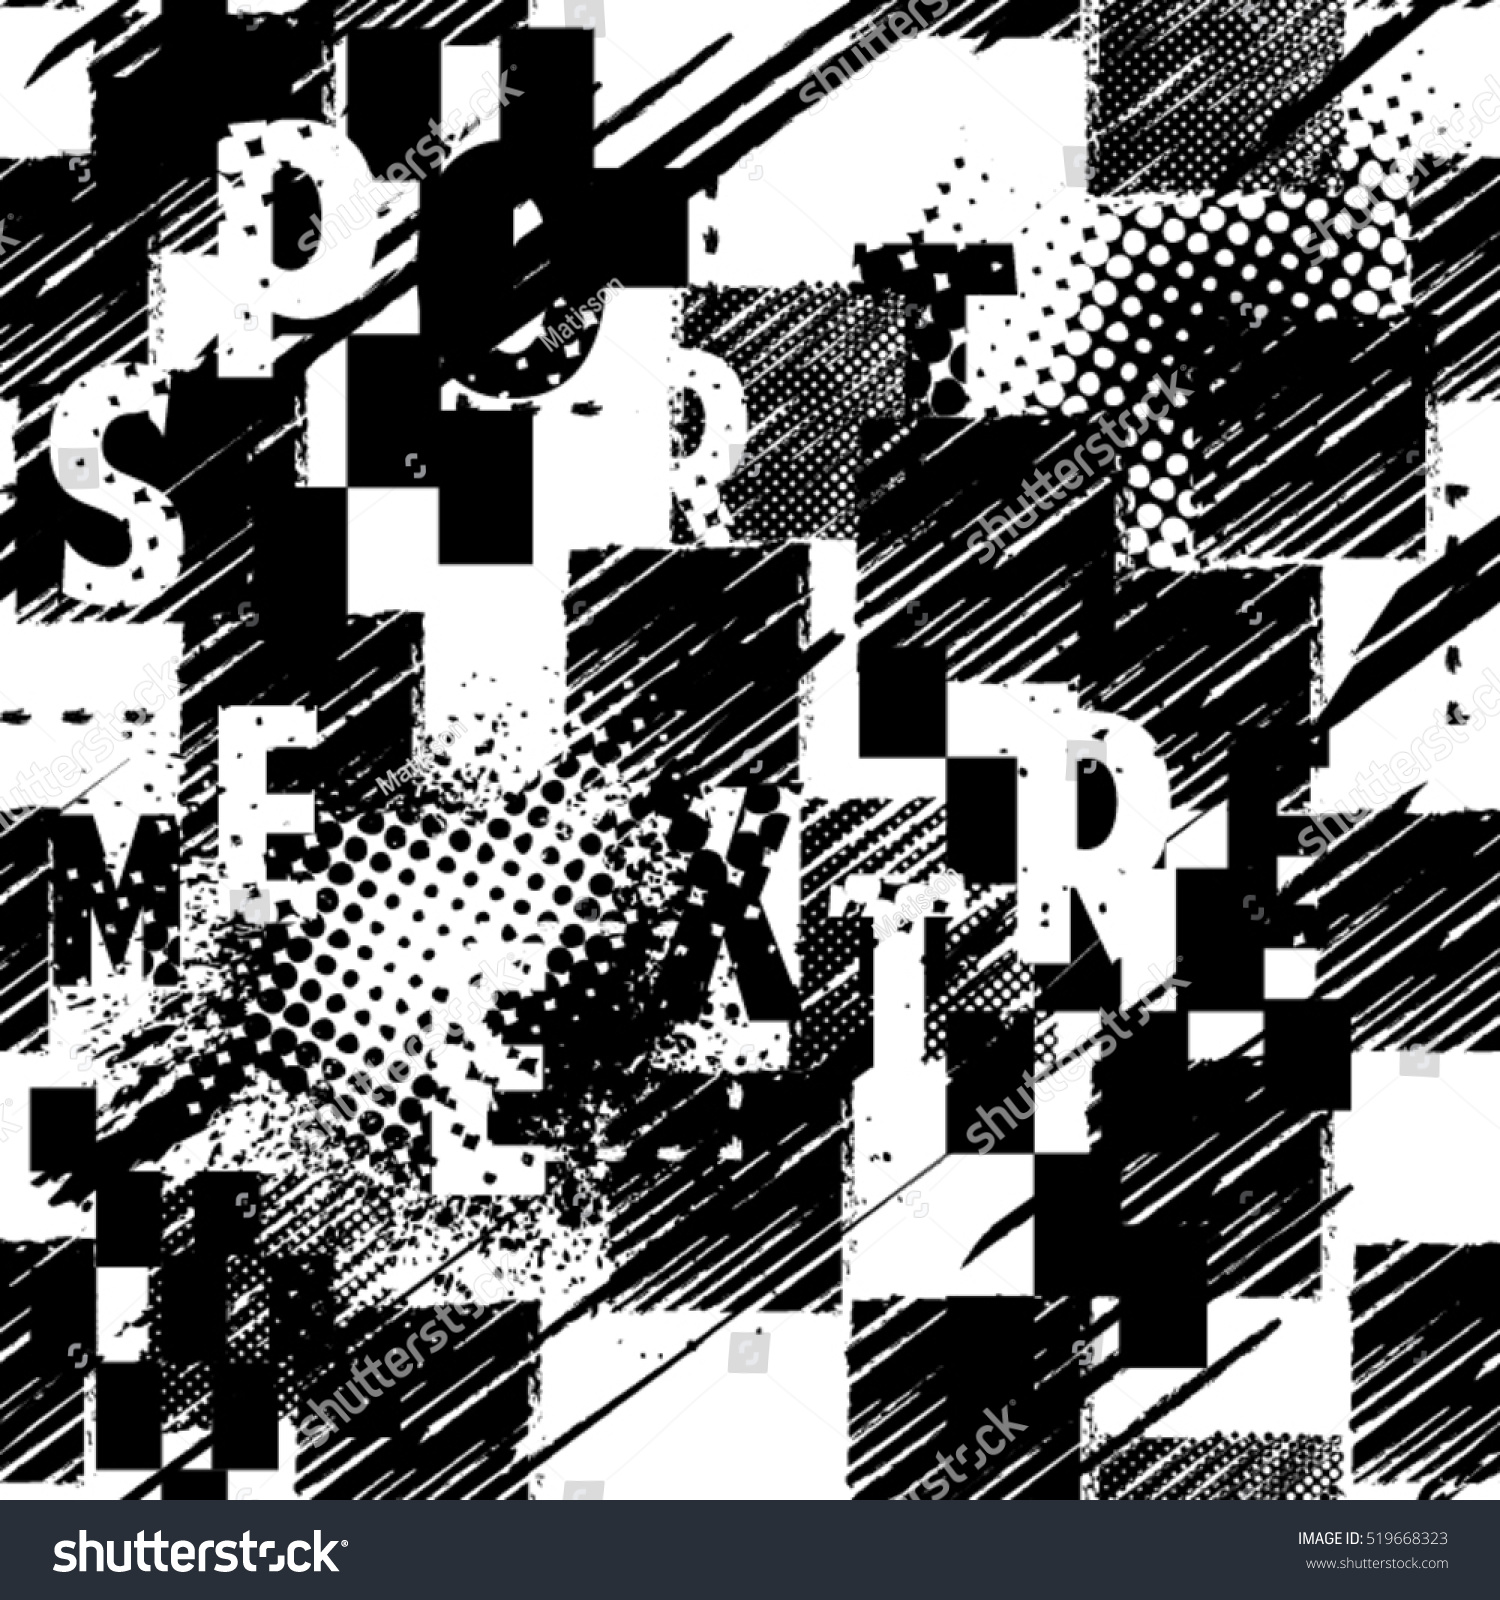 Abstract Black And White Seamless Grunge Pattern For Boy Urban Style Modern Background With Lightning